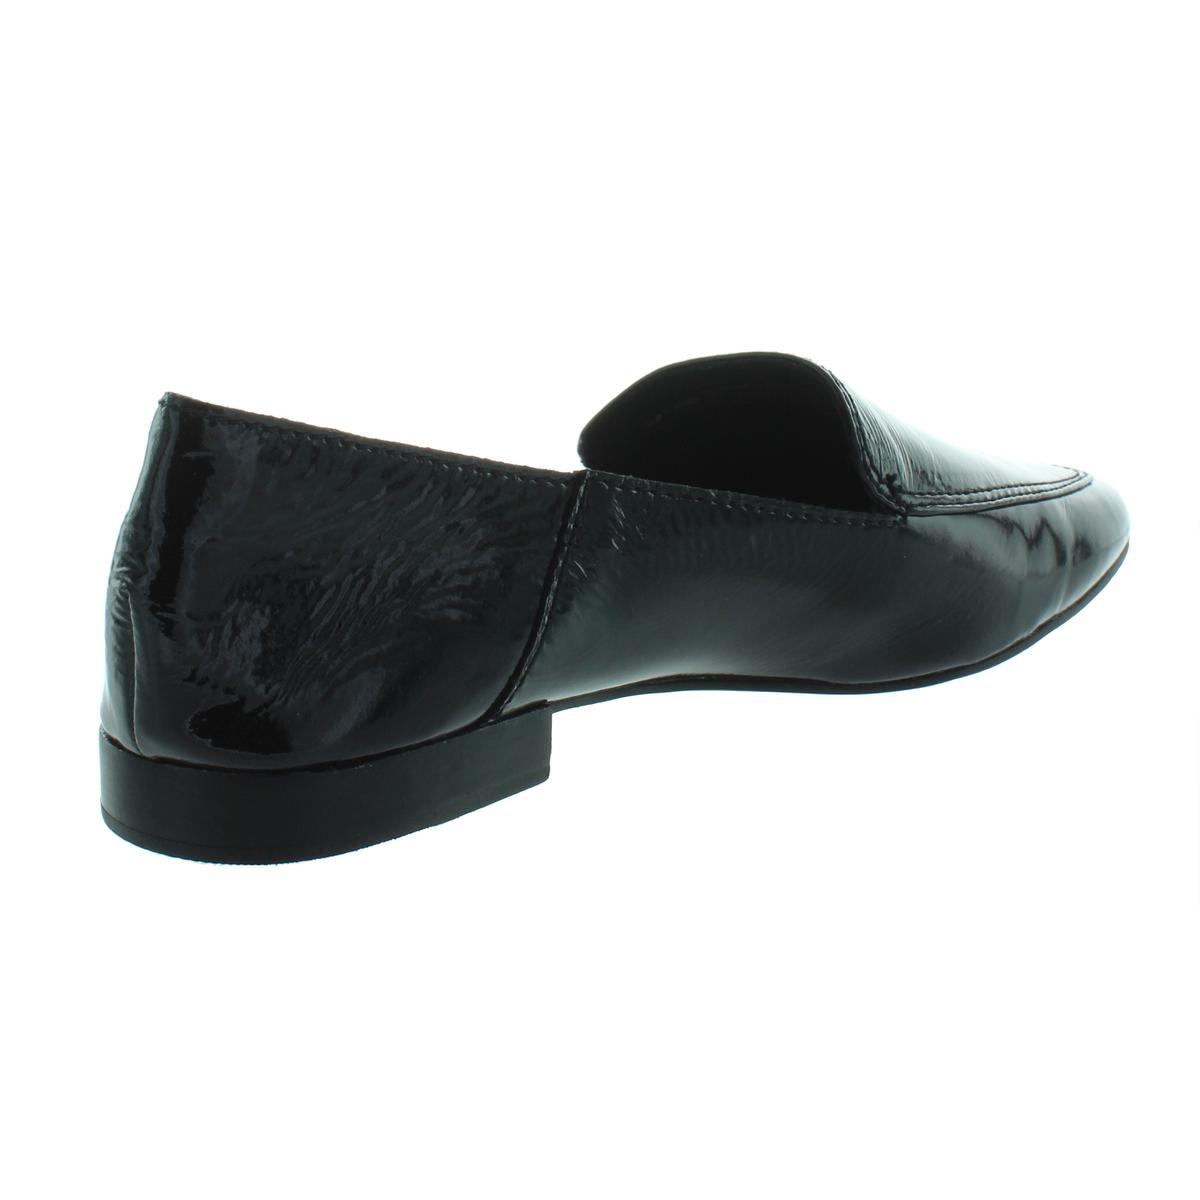 Dolce Casual Vita Damenschuhe Camden Apron Toe Stacked Heel Casual Dolce Loafers Schuhes BHFO 4501 180716